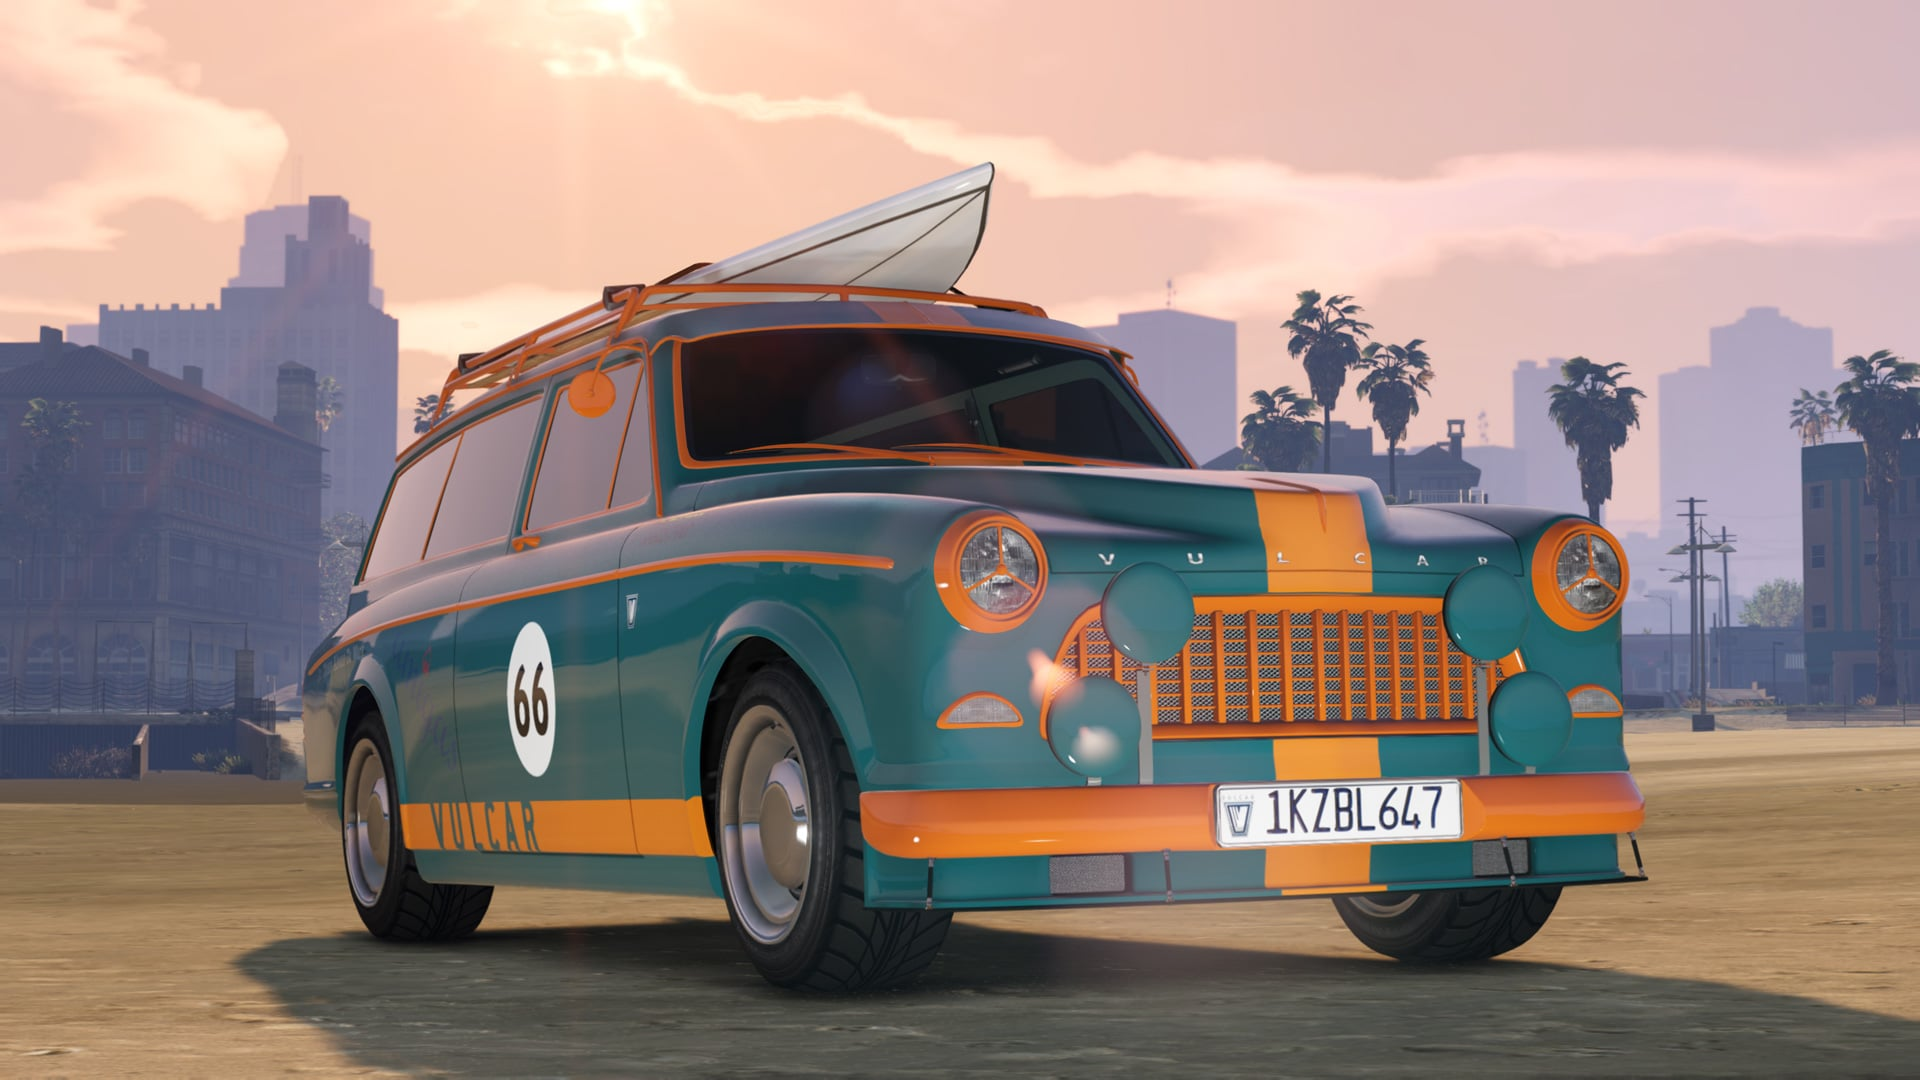 Grand Theft Auto Vice City Car Wallpaper Southern San Andreas Super Sport Series Begins In Gta Online